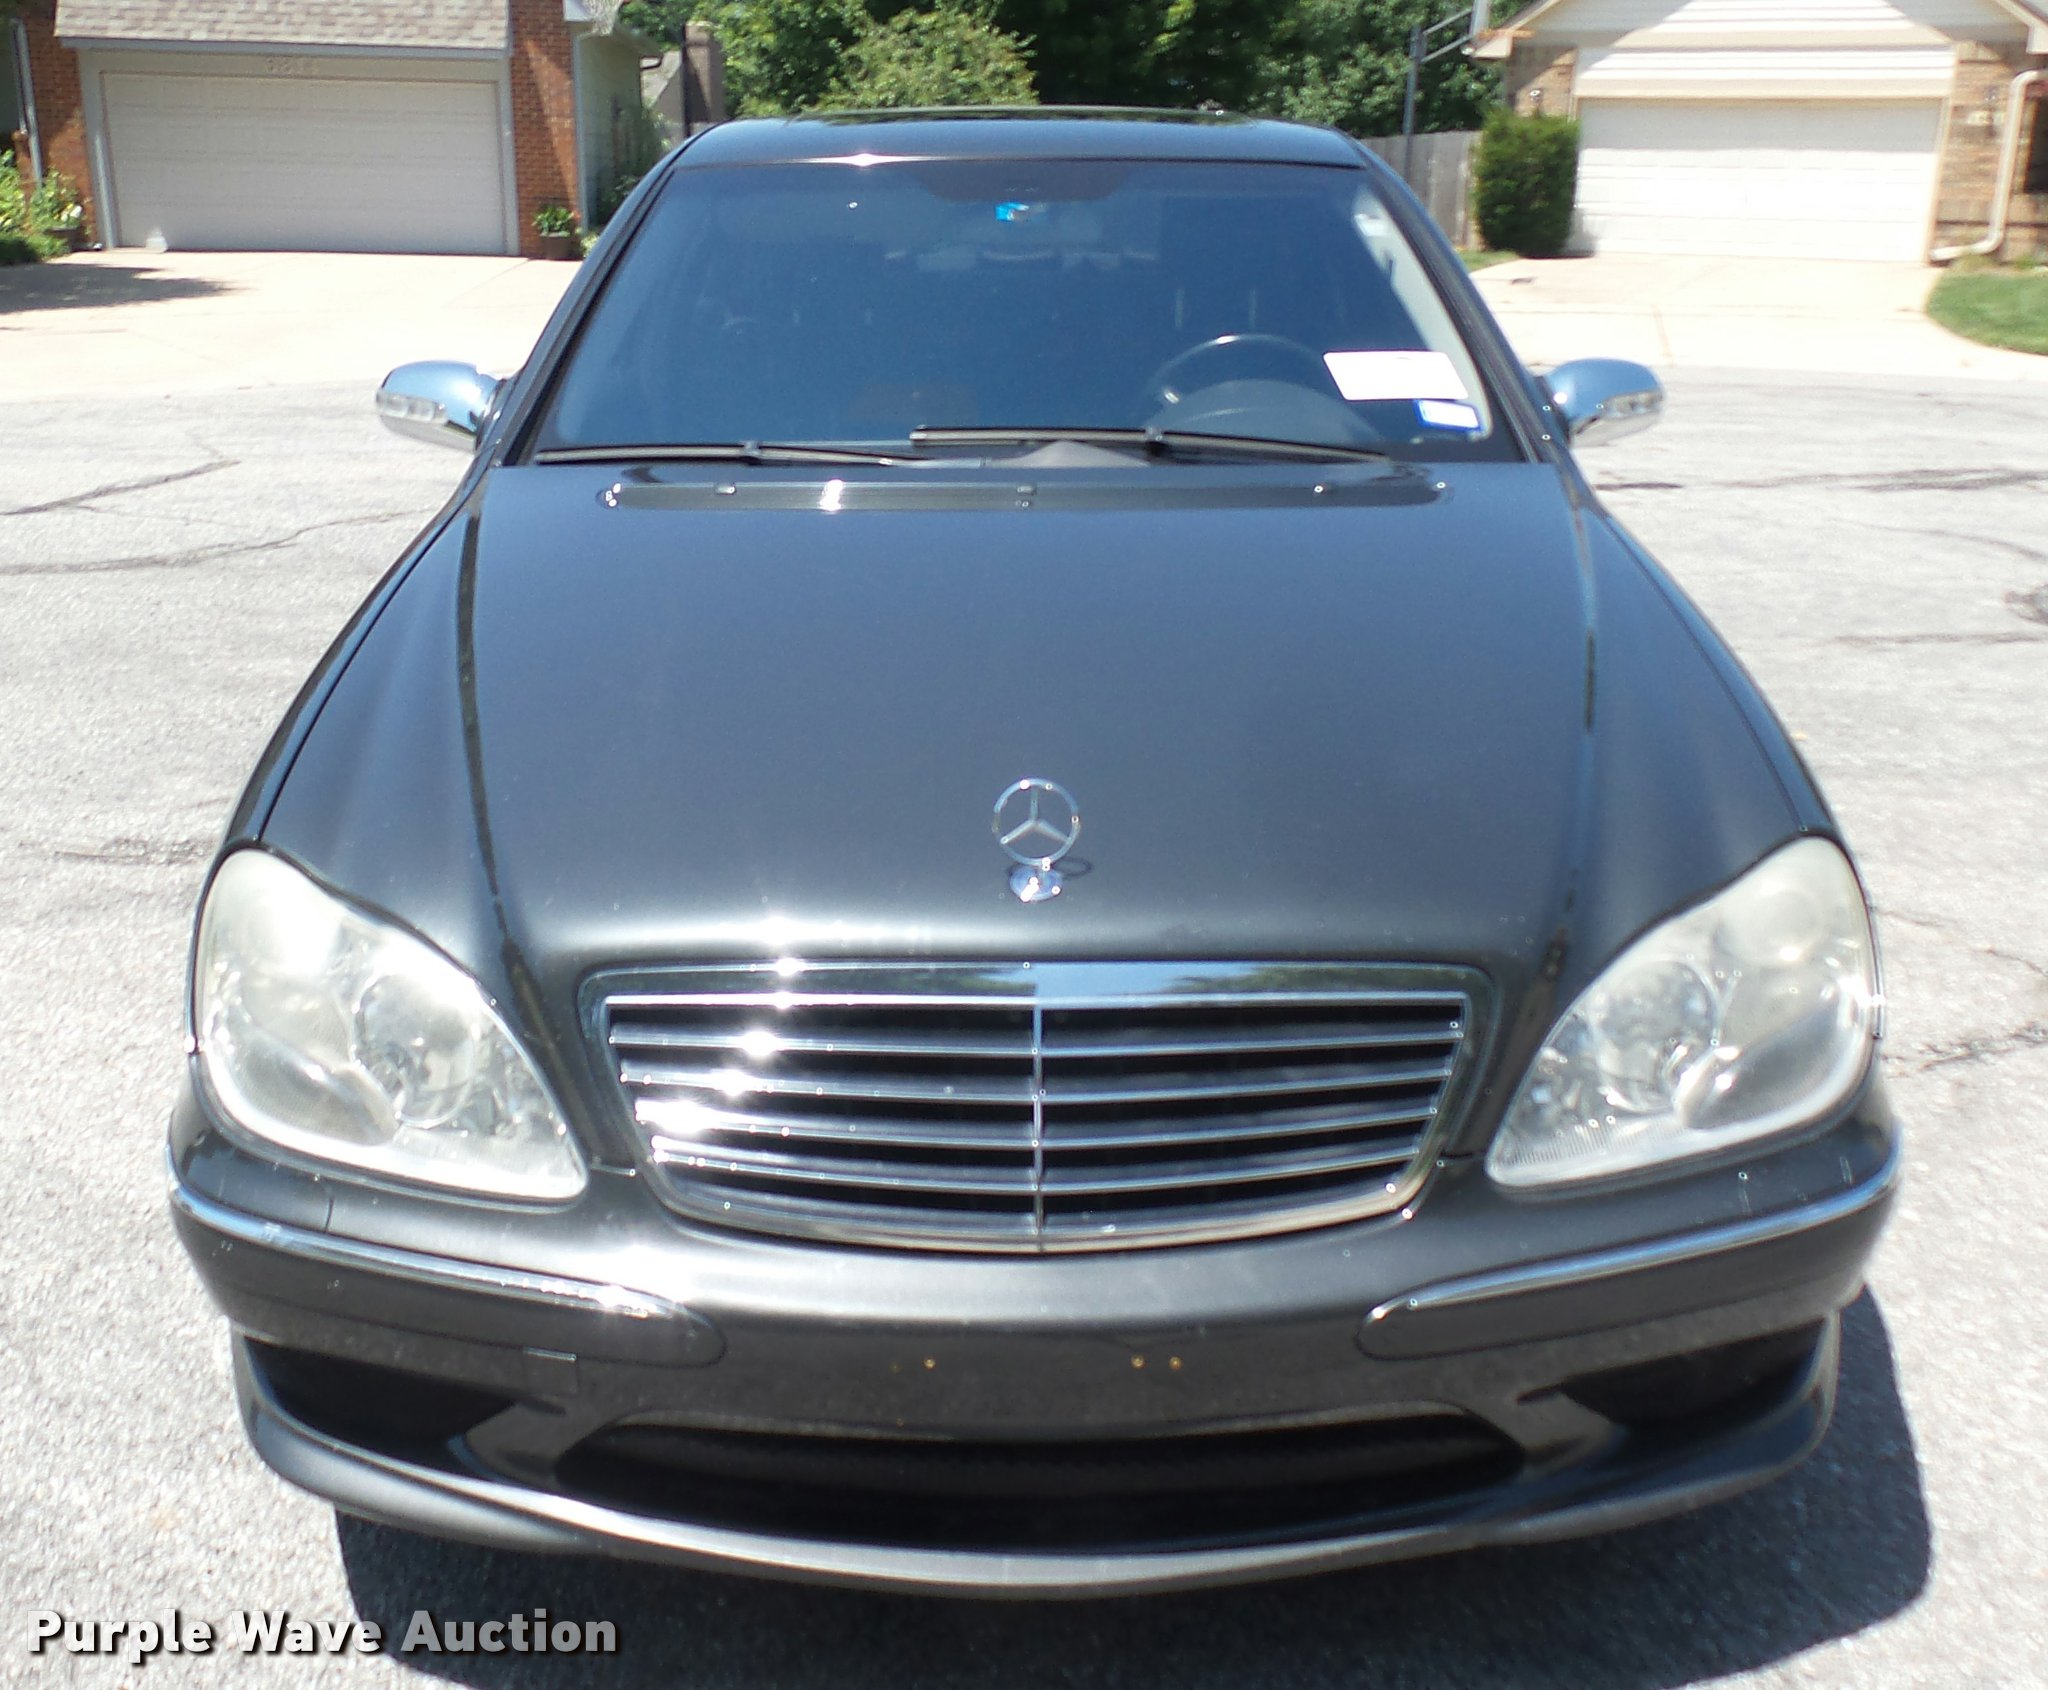 2004 mercedes benz s500 full size in new window